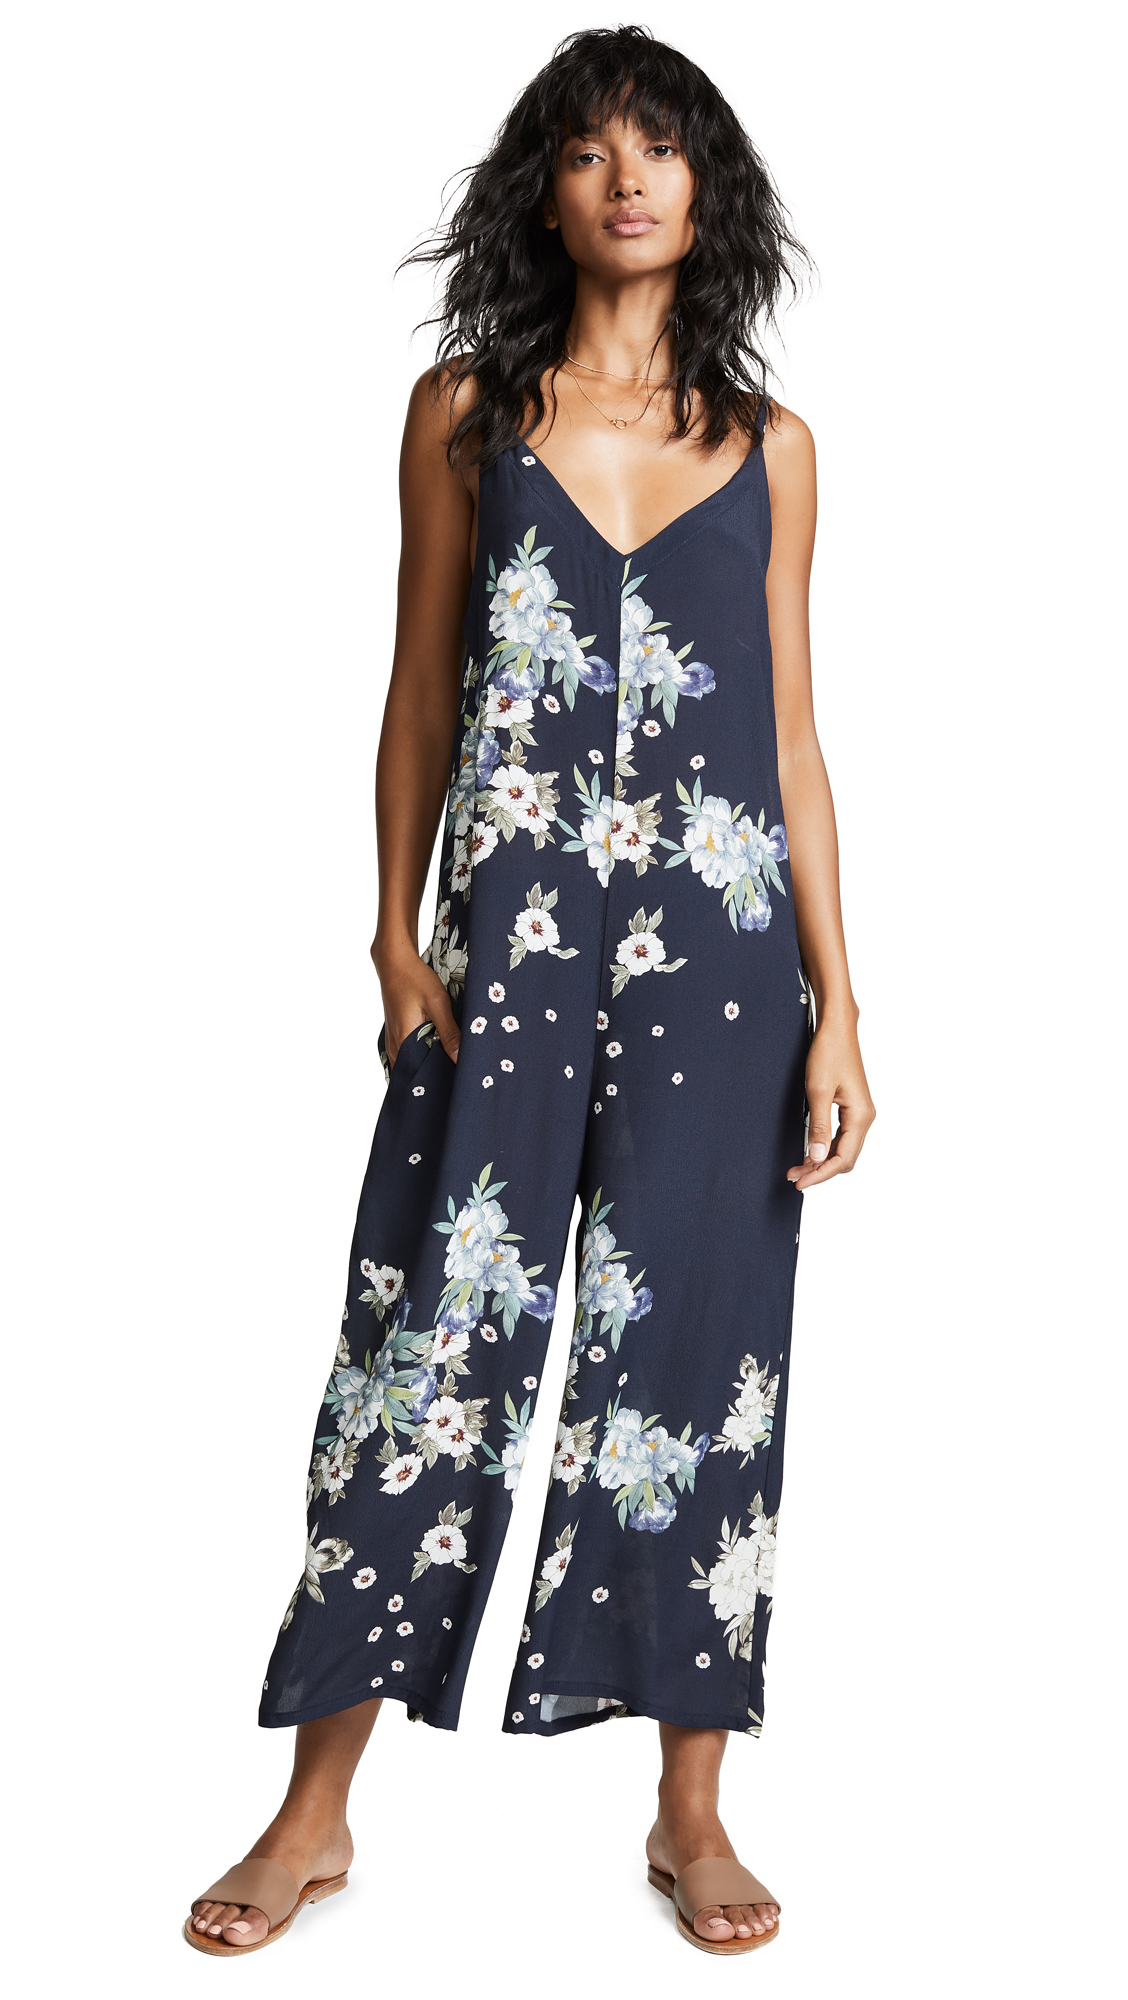 ONE by Midnight Elise Jumpsuit